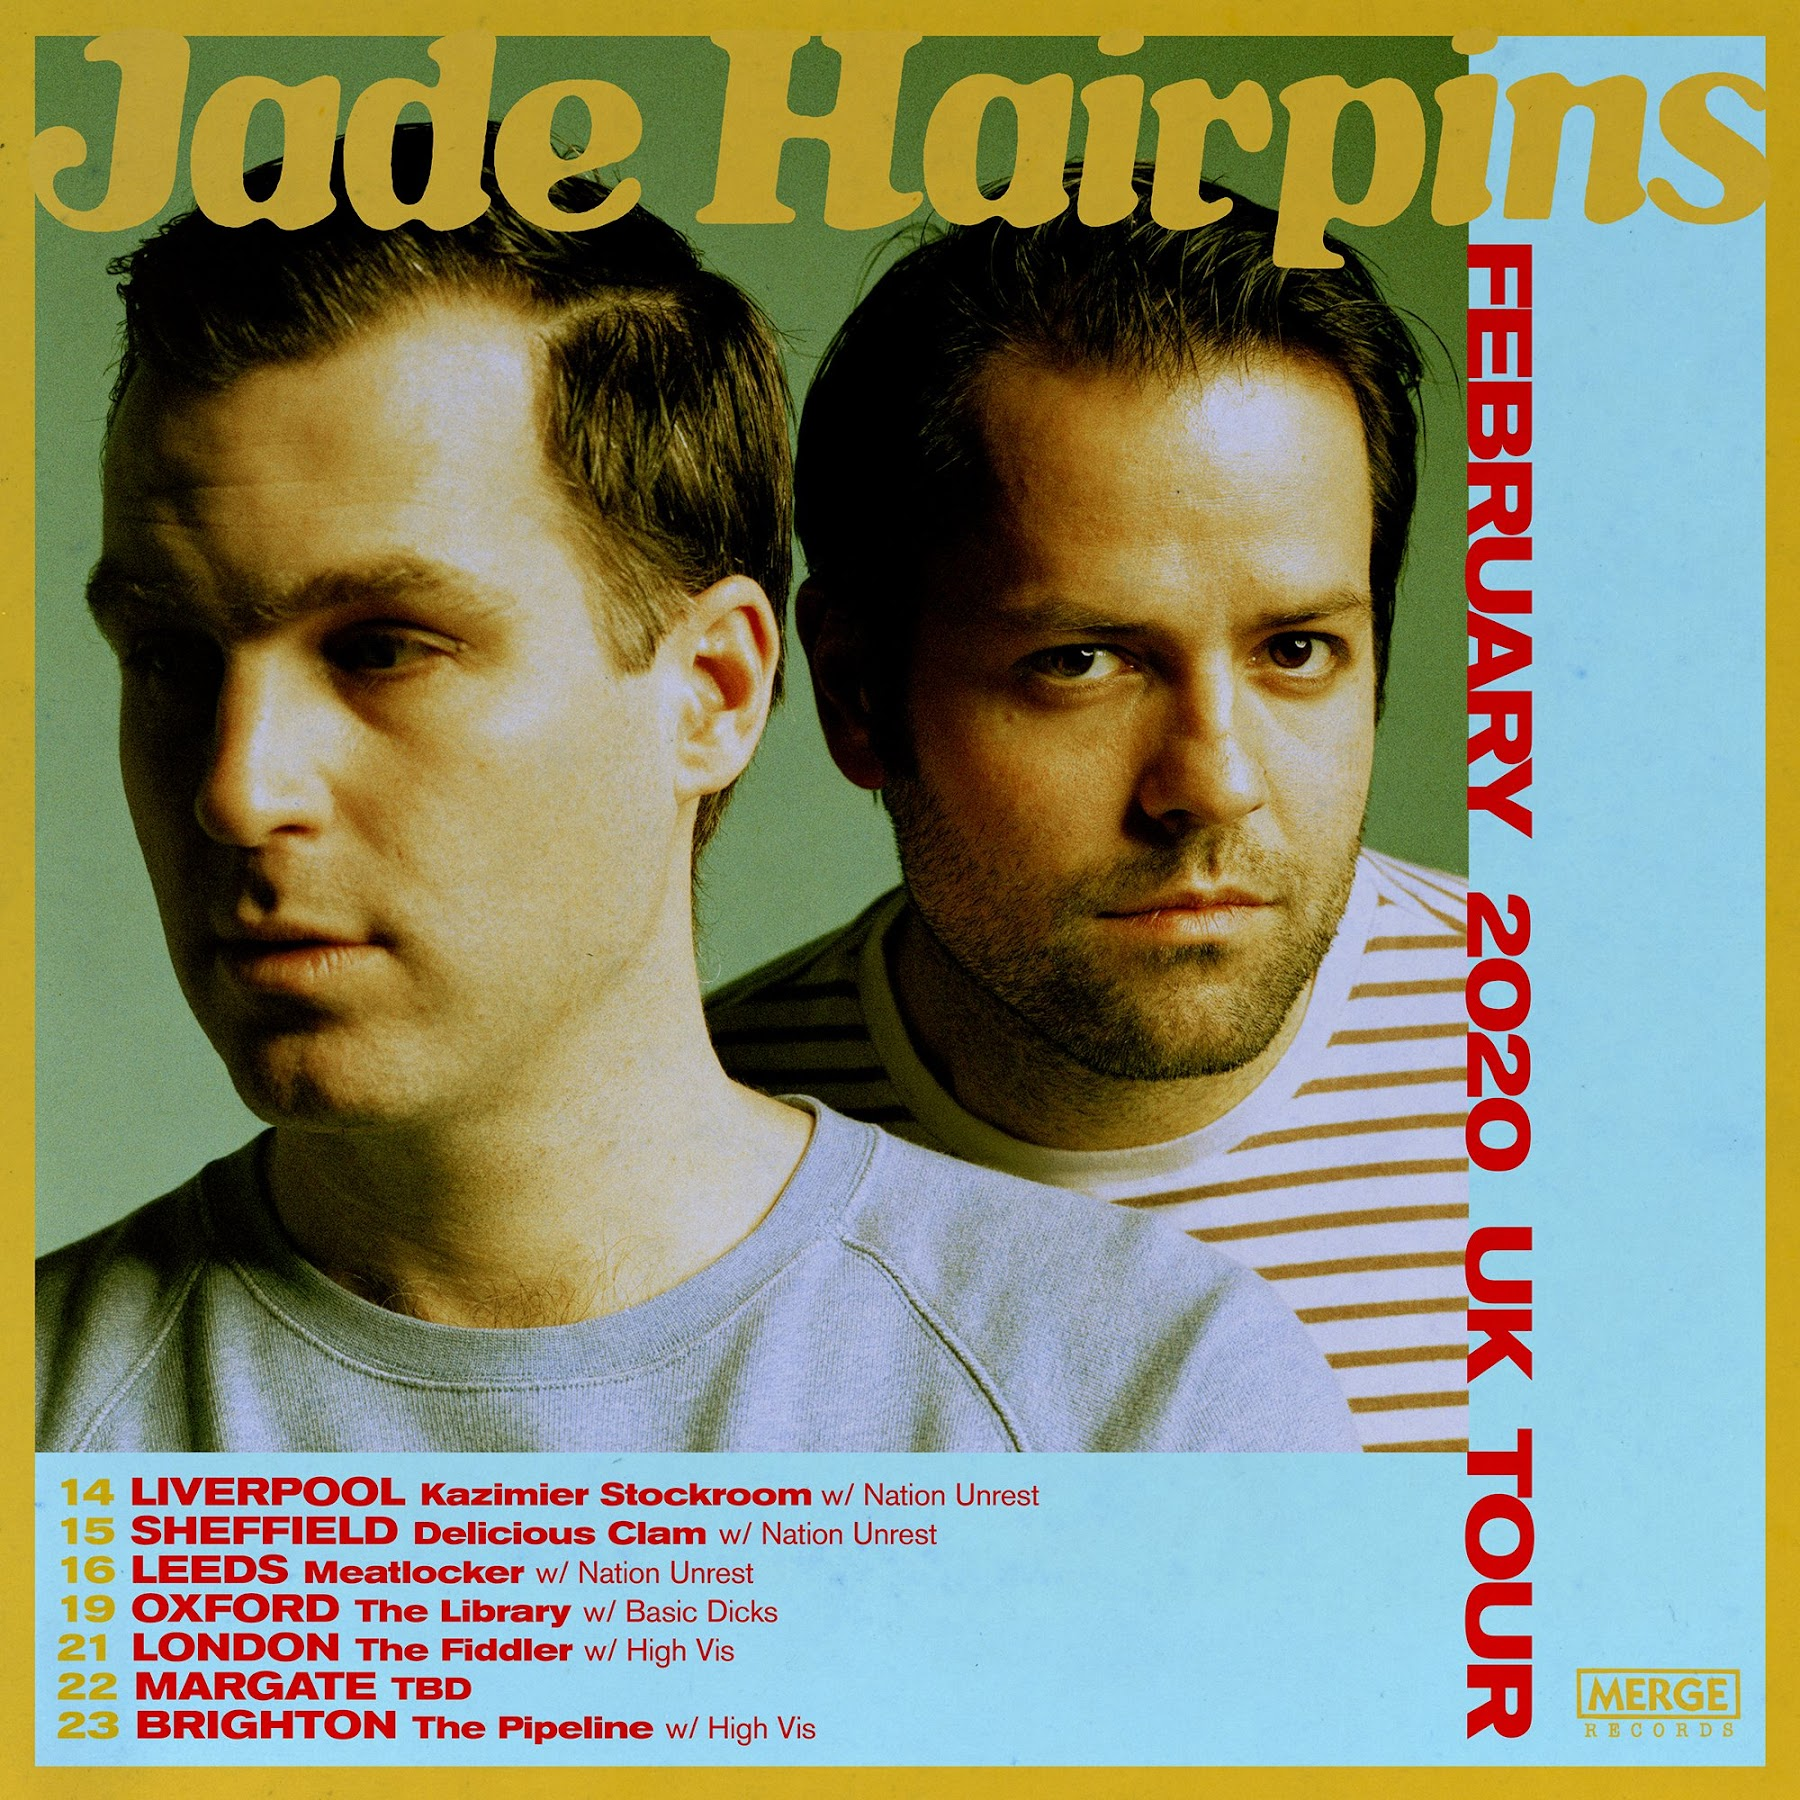 Jade Hairpins Revealed To Be Jonah Falco Mike Haliechuk From F Cked Up Plot February 2020 Uk Tour Behind 2018 12 Inch Merge Records